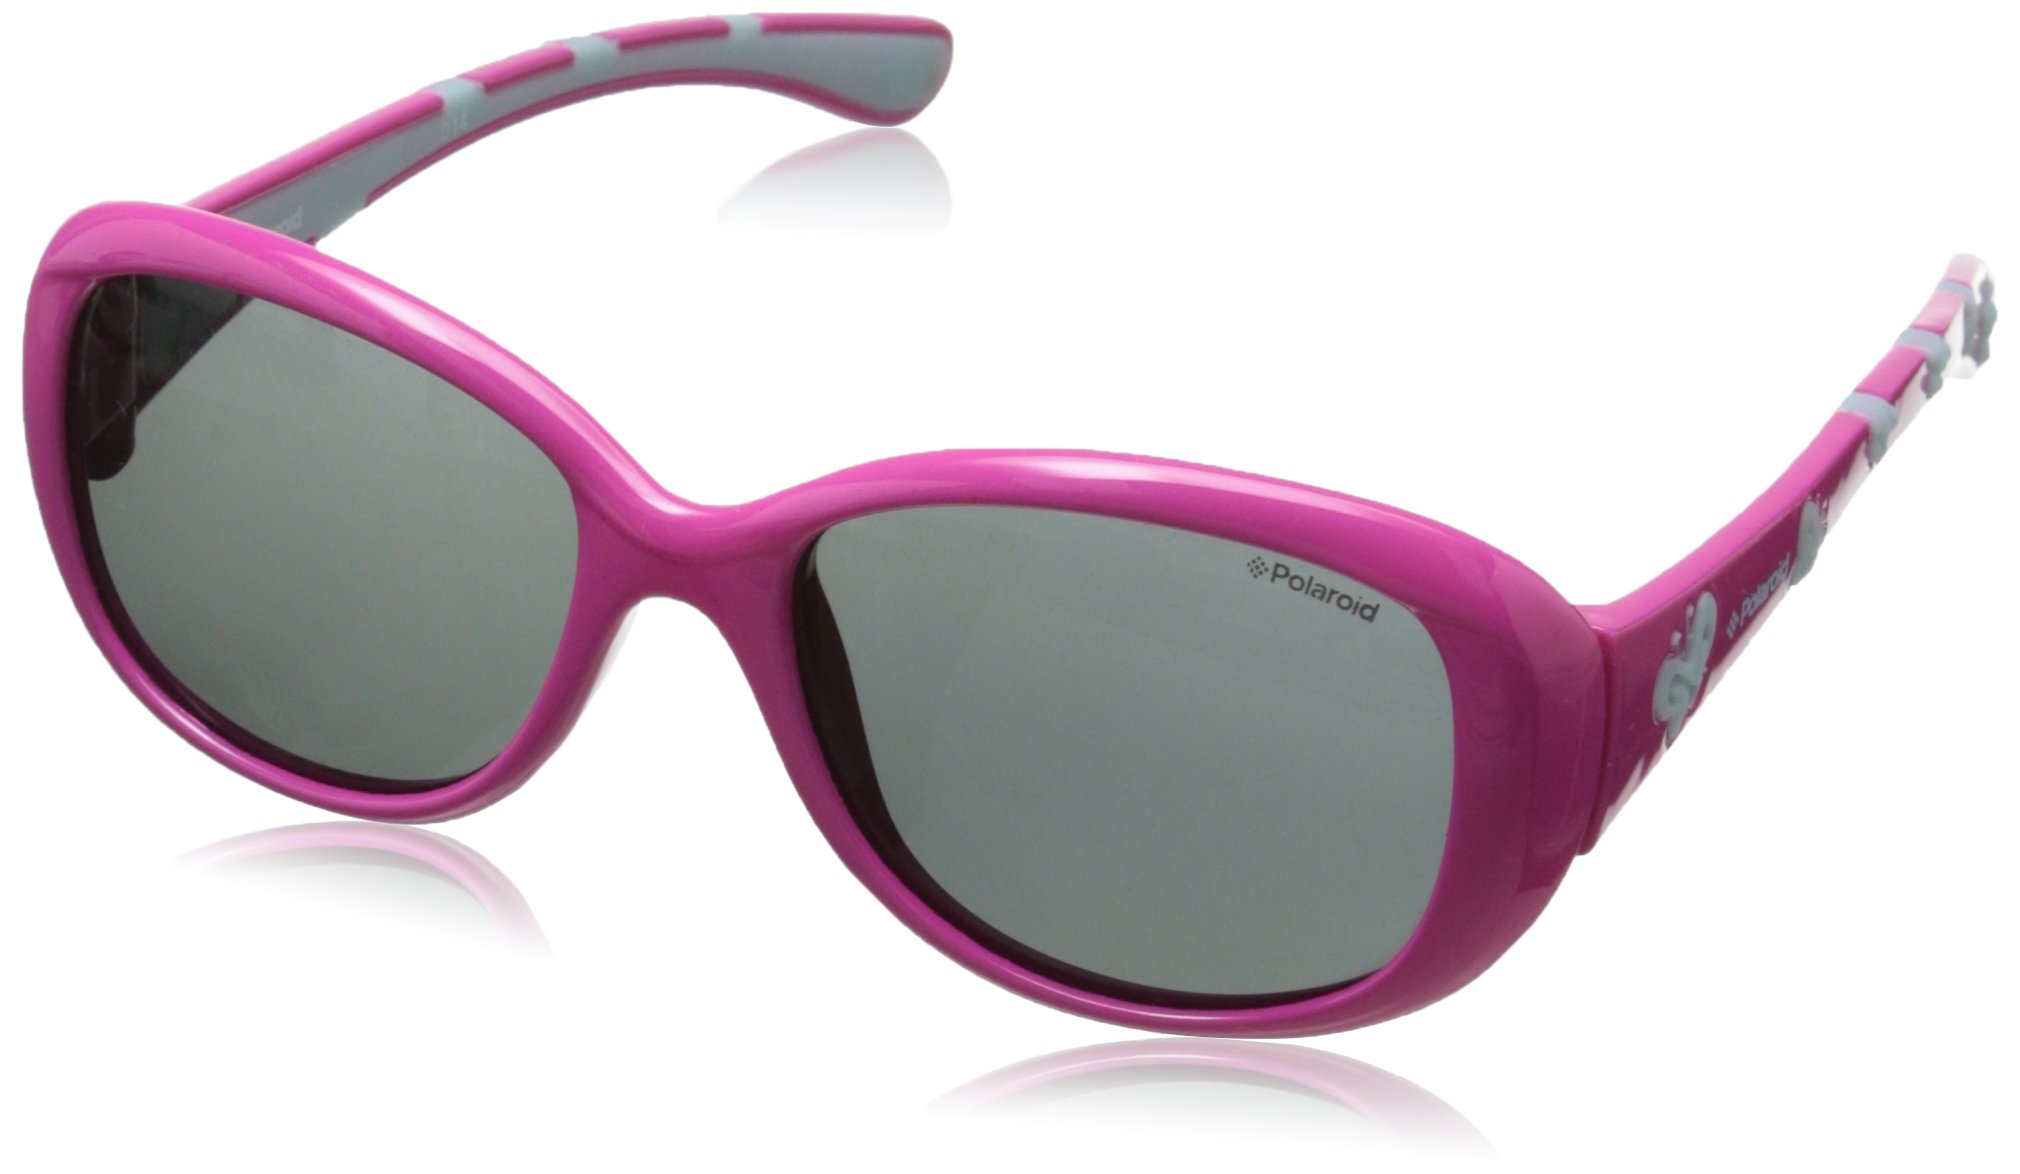 Polaroid Sunglasses P0411S Polarized Oval Sunglasses, Pink, 45 mm by Polaroid Sunglasses